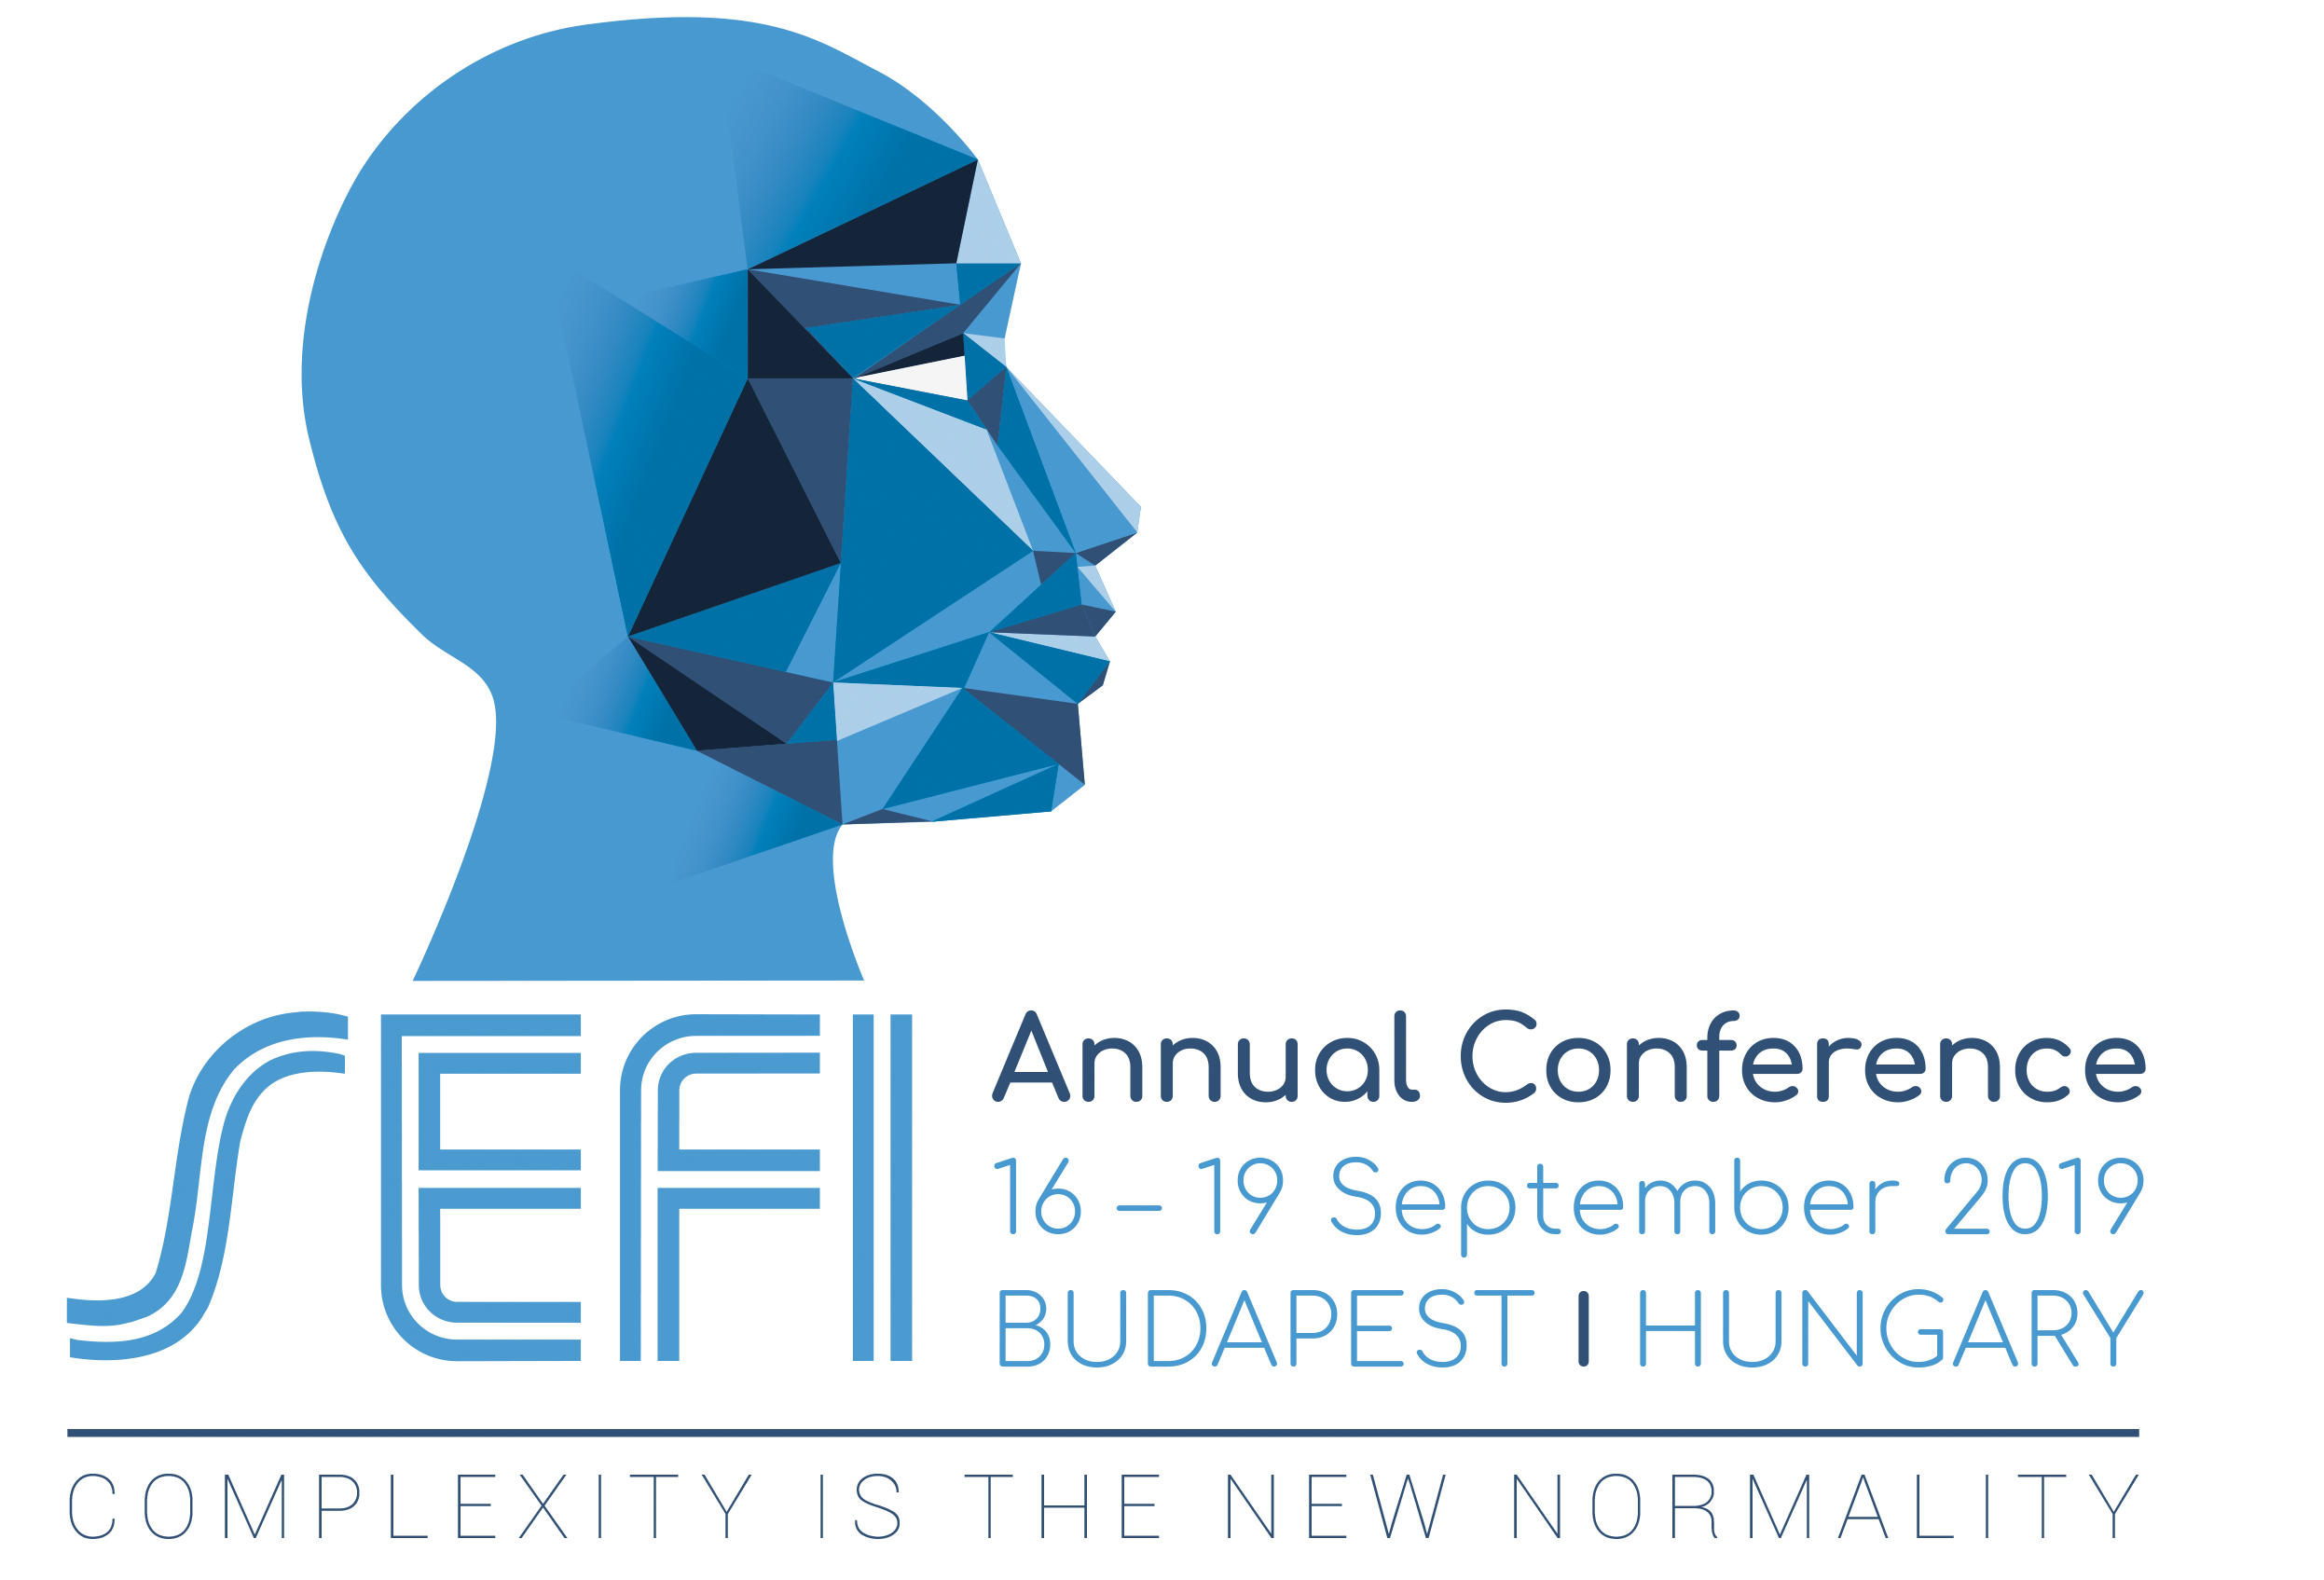 Call For Papers: SEFI 2019 Annual Conference In Budapest